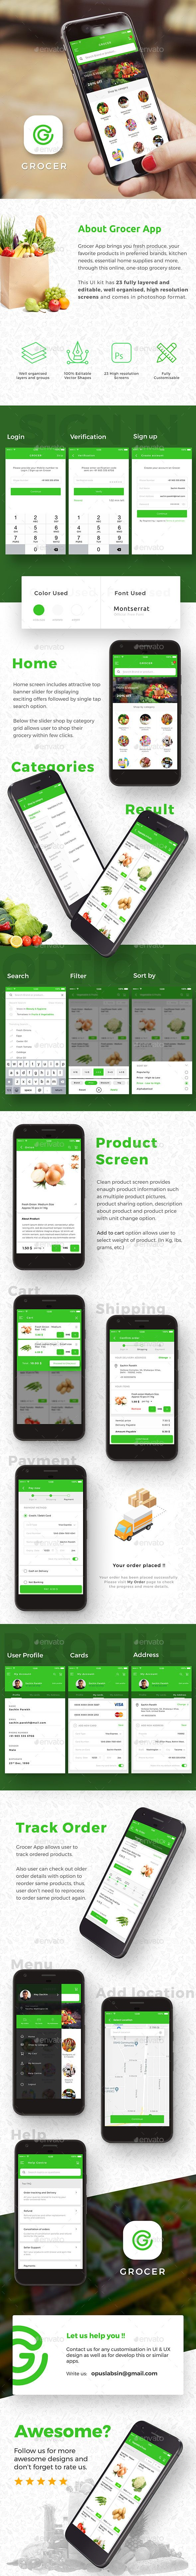 The 215 best Android App Designs images on Pinterest | Font logo ...